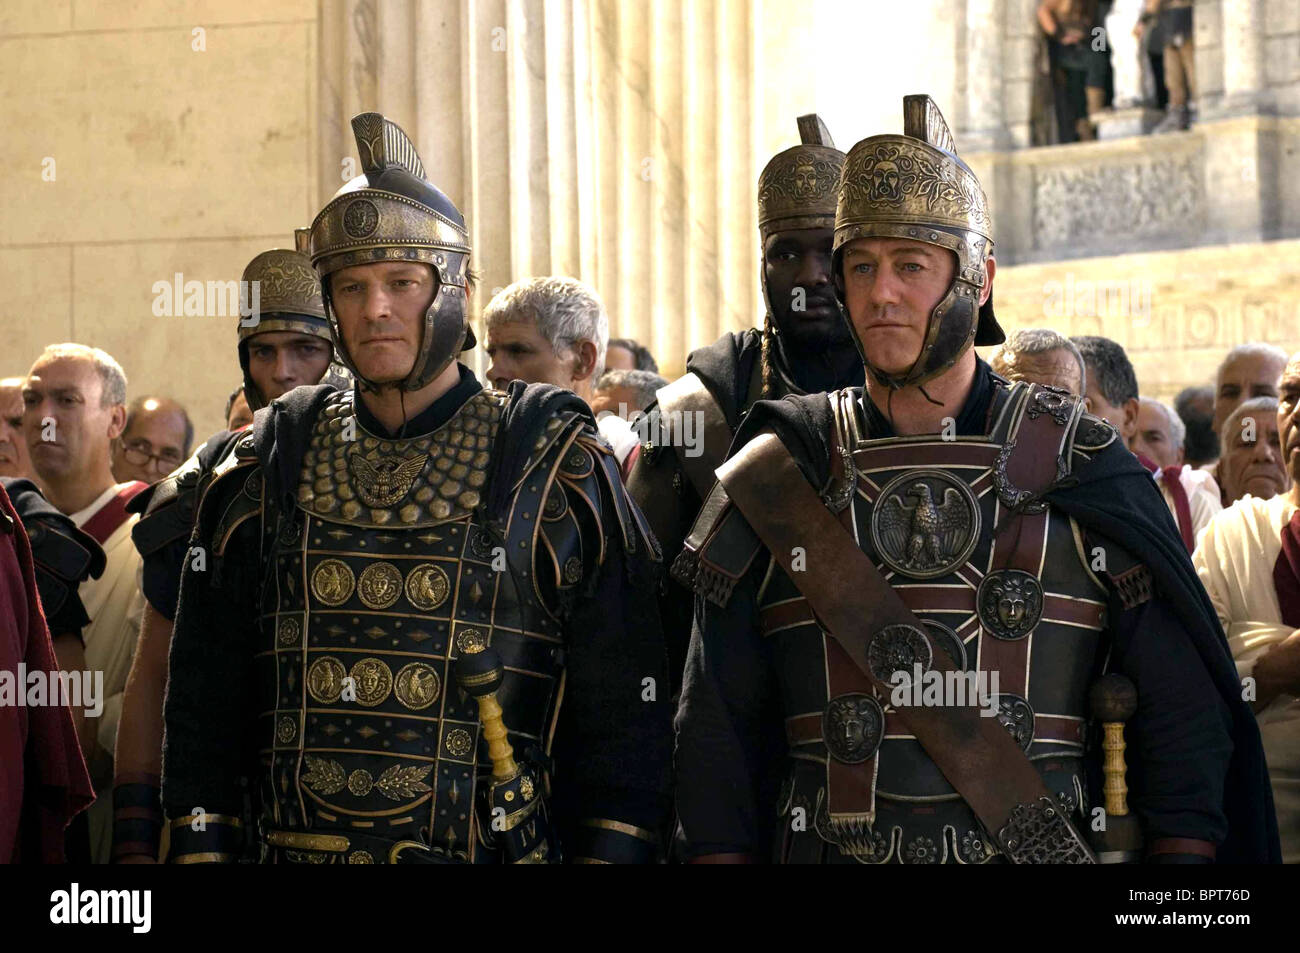 COLIN FIRTH & OWEN TEALE THE LAST LEGION (2007) - Stock Image